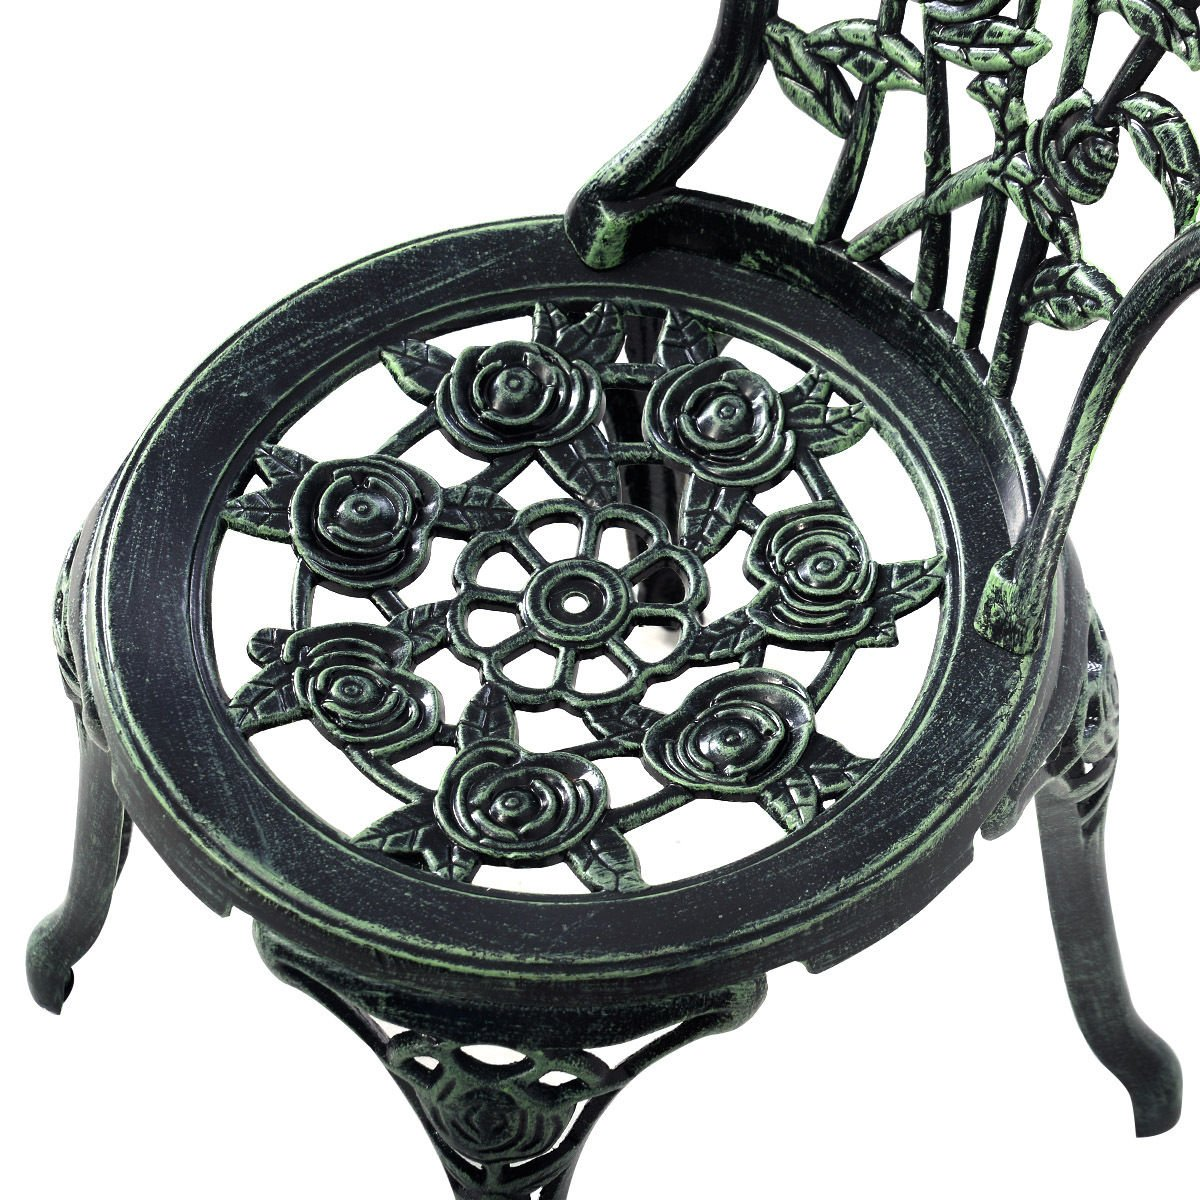 Giantex Patio Furniture Cast Aluminum Rose Design Bistro Set Antique Green (Green) 4